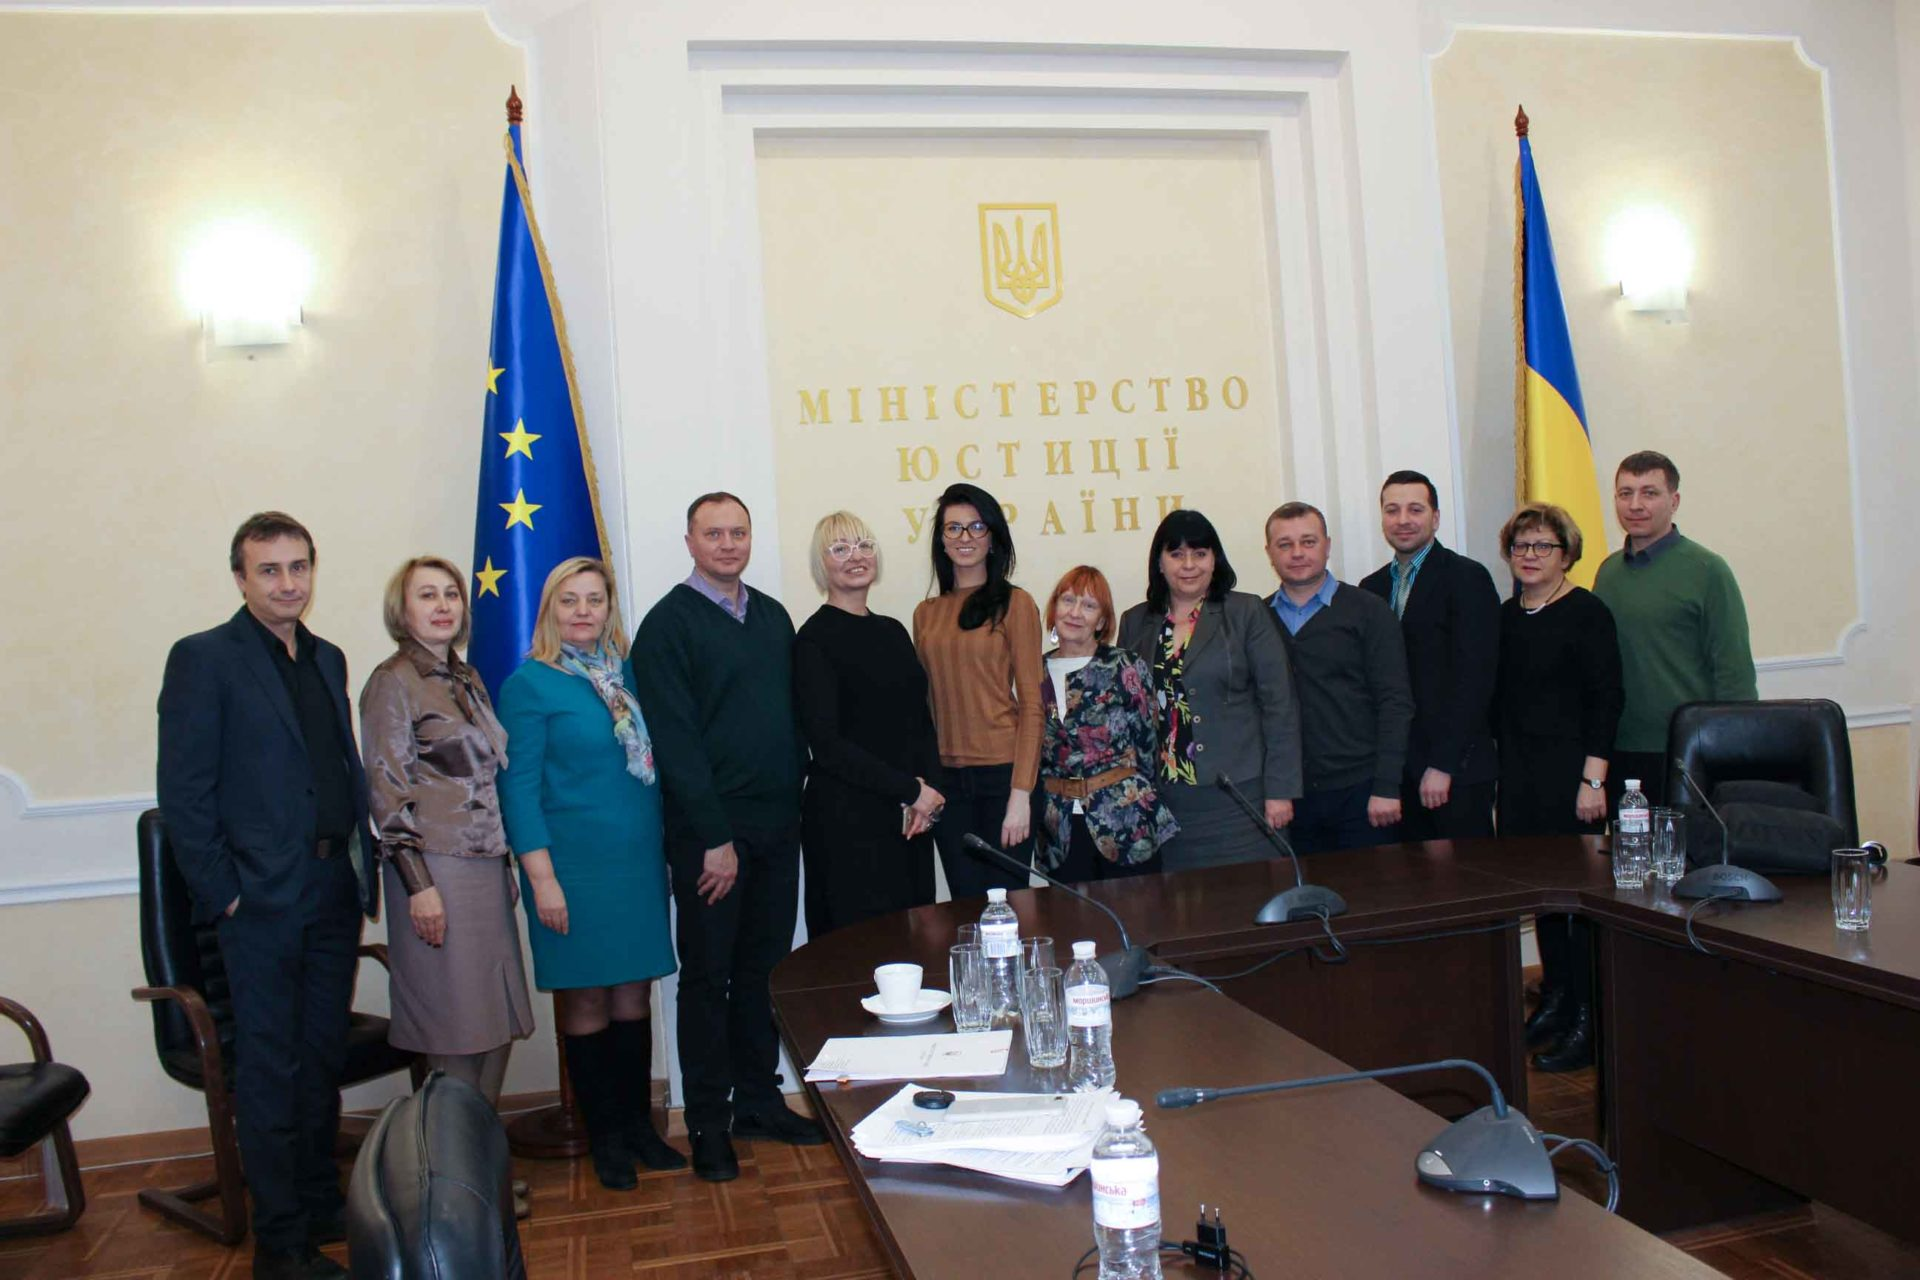 Juvenile justice reforms based on international standards in Ukraine